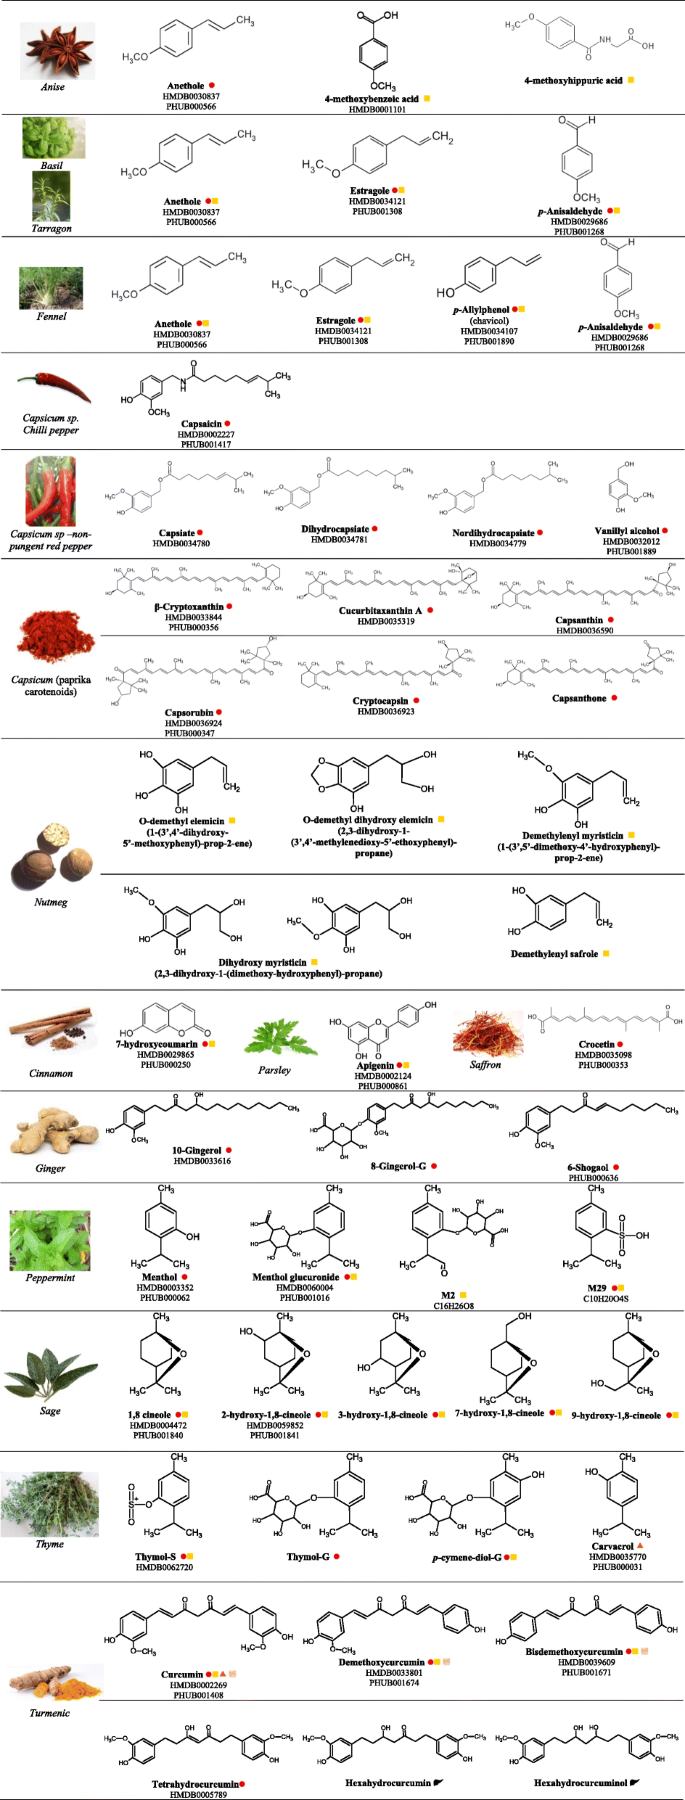 Herbs and Spices- Biomarkers of Intake Based on Human